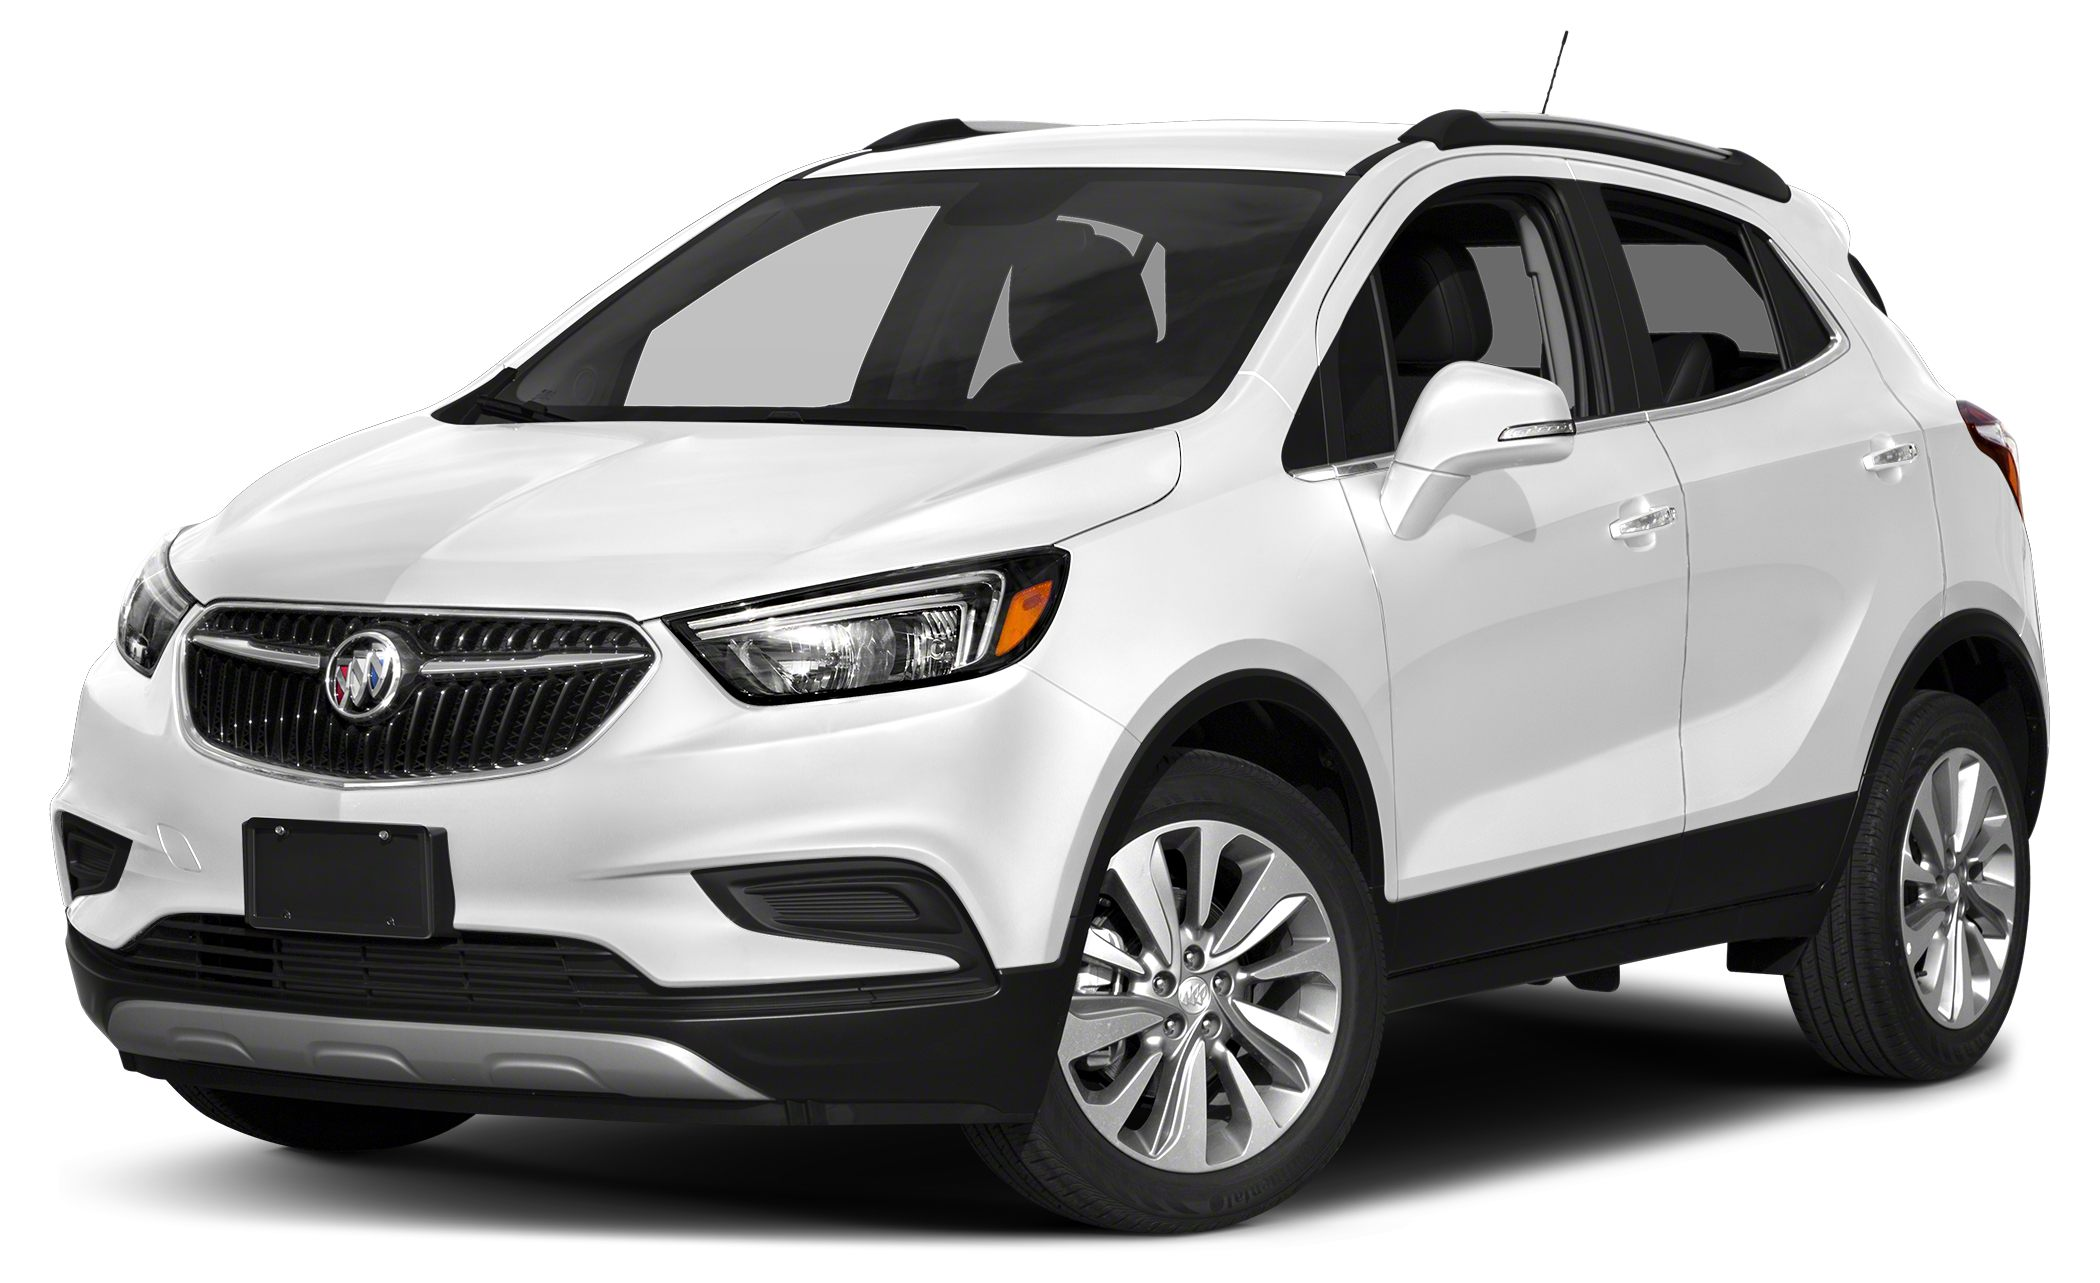 2018 Buick Encore Preferred II Color Summit White Stock C1658 VIN KL4CJFSB6JB701492